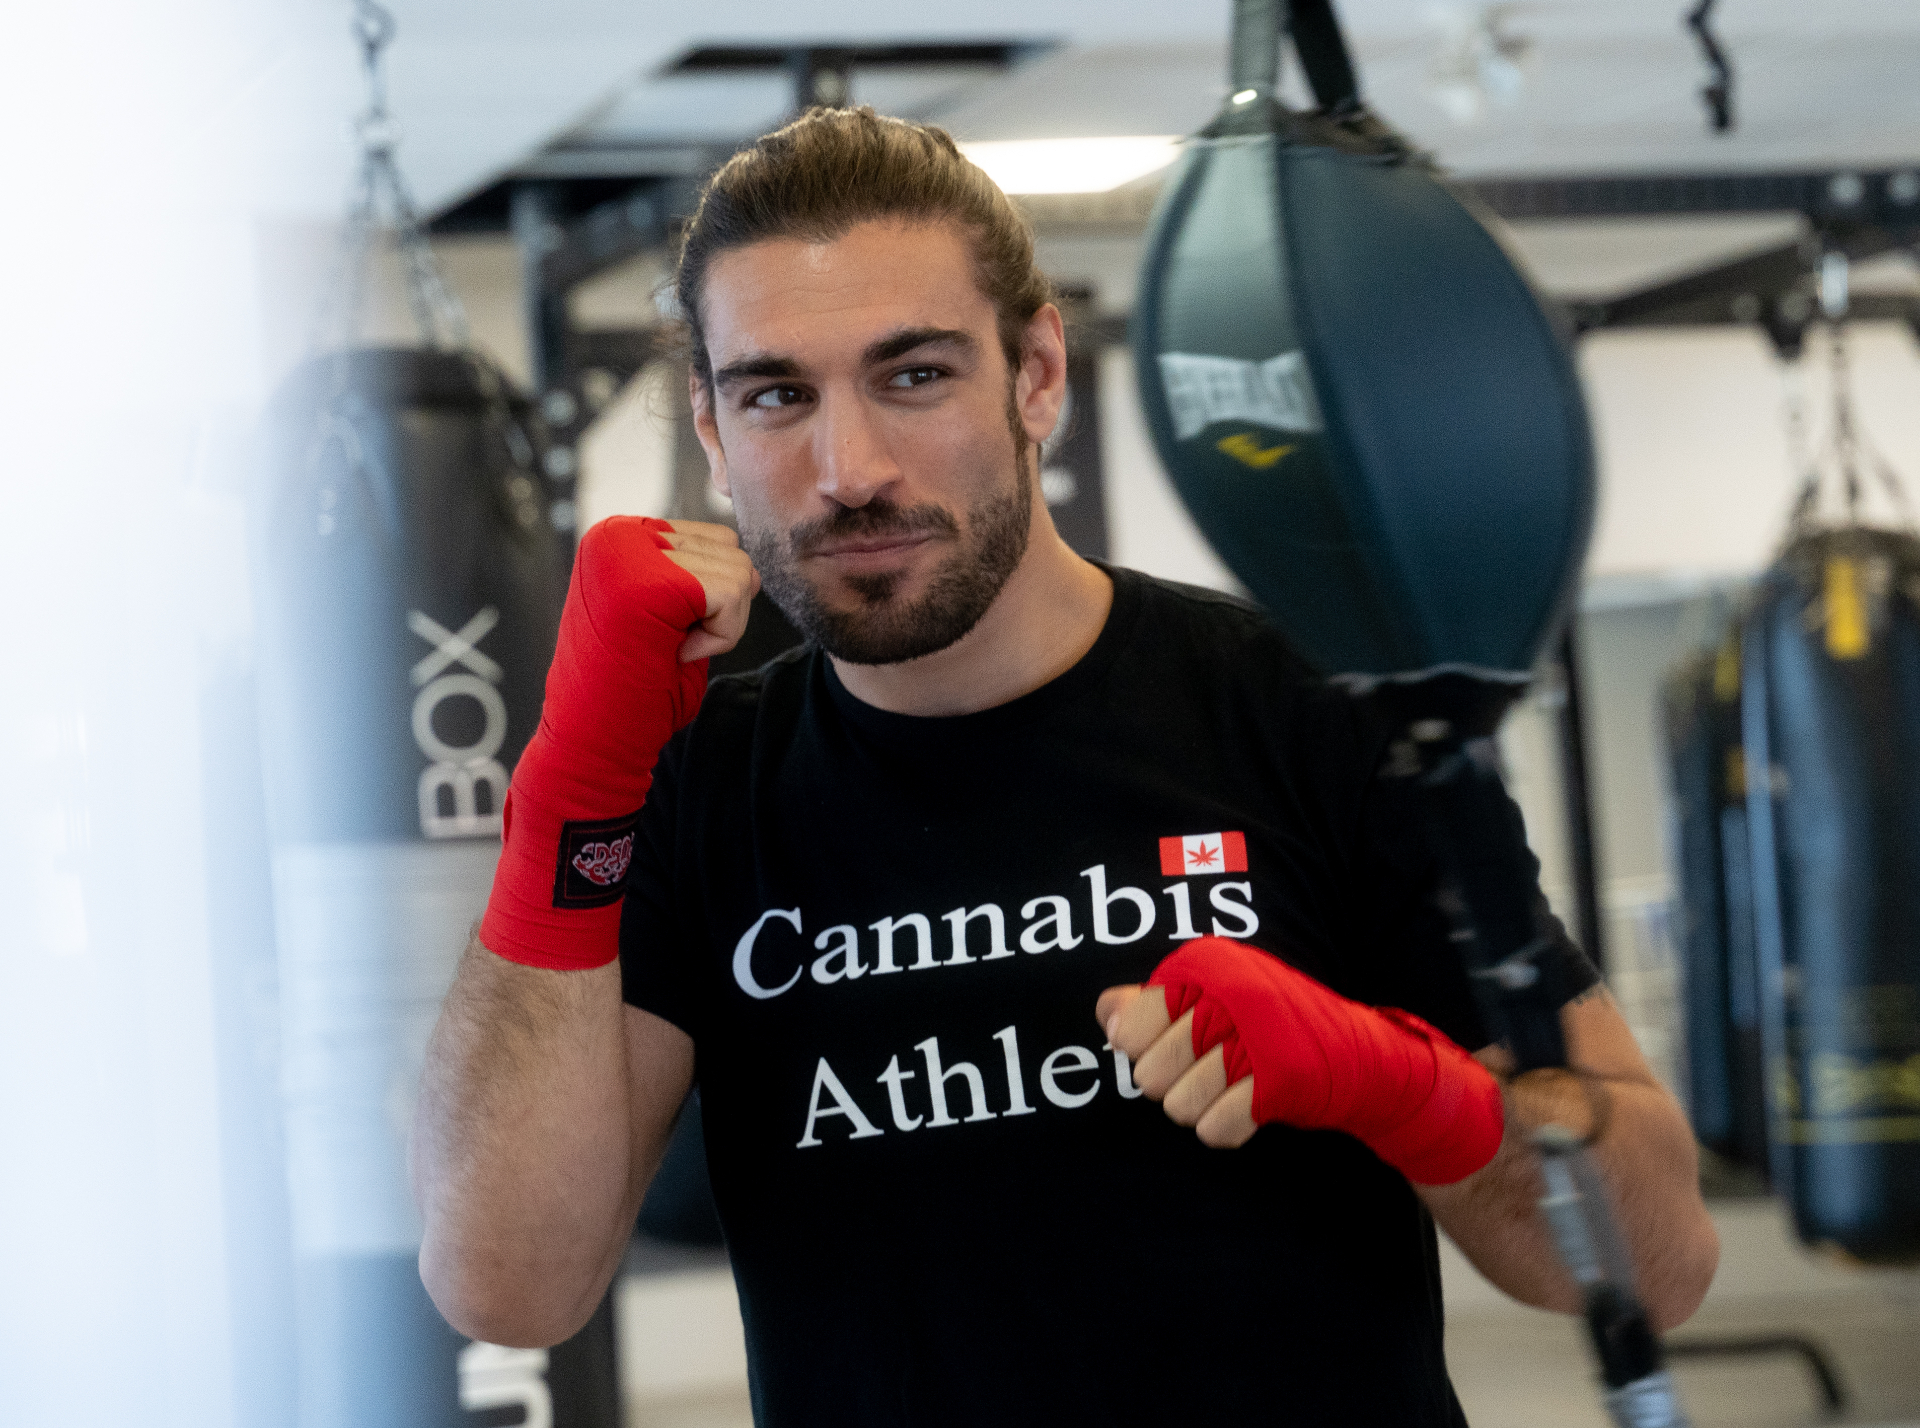 Elias Theodorou wants to K.O. cannabis restrictions for athletes -